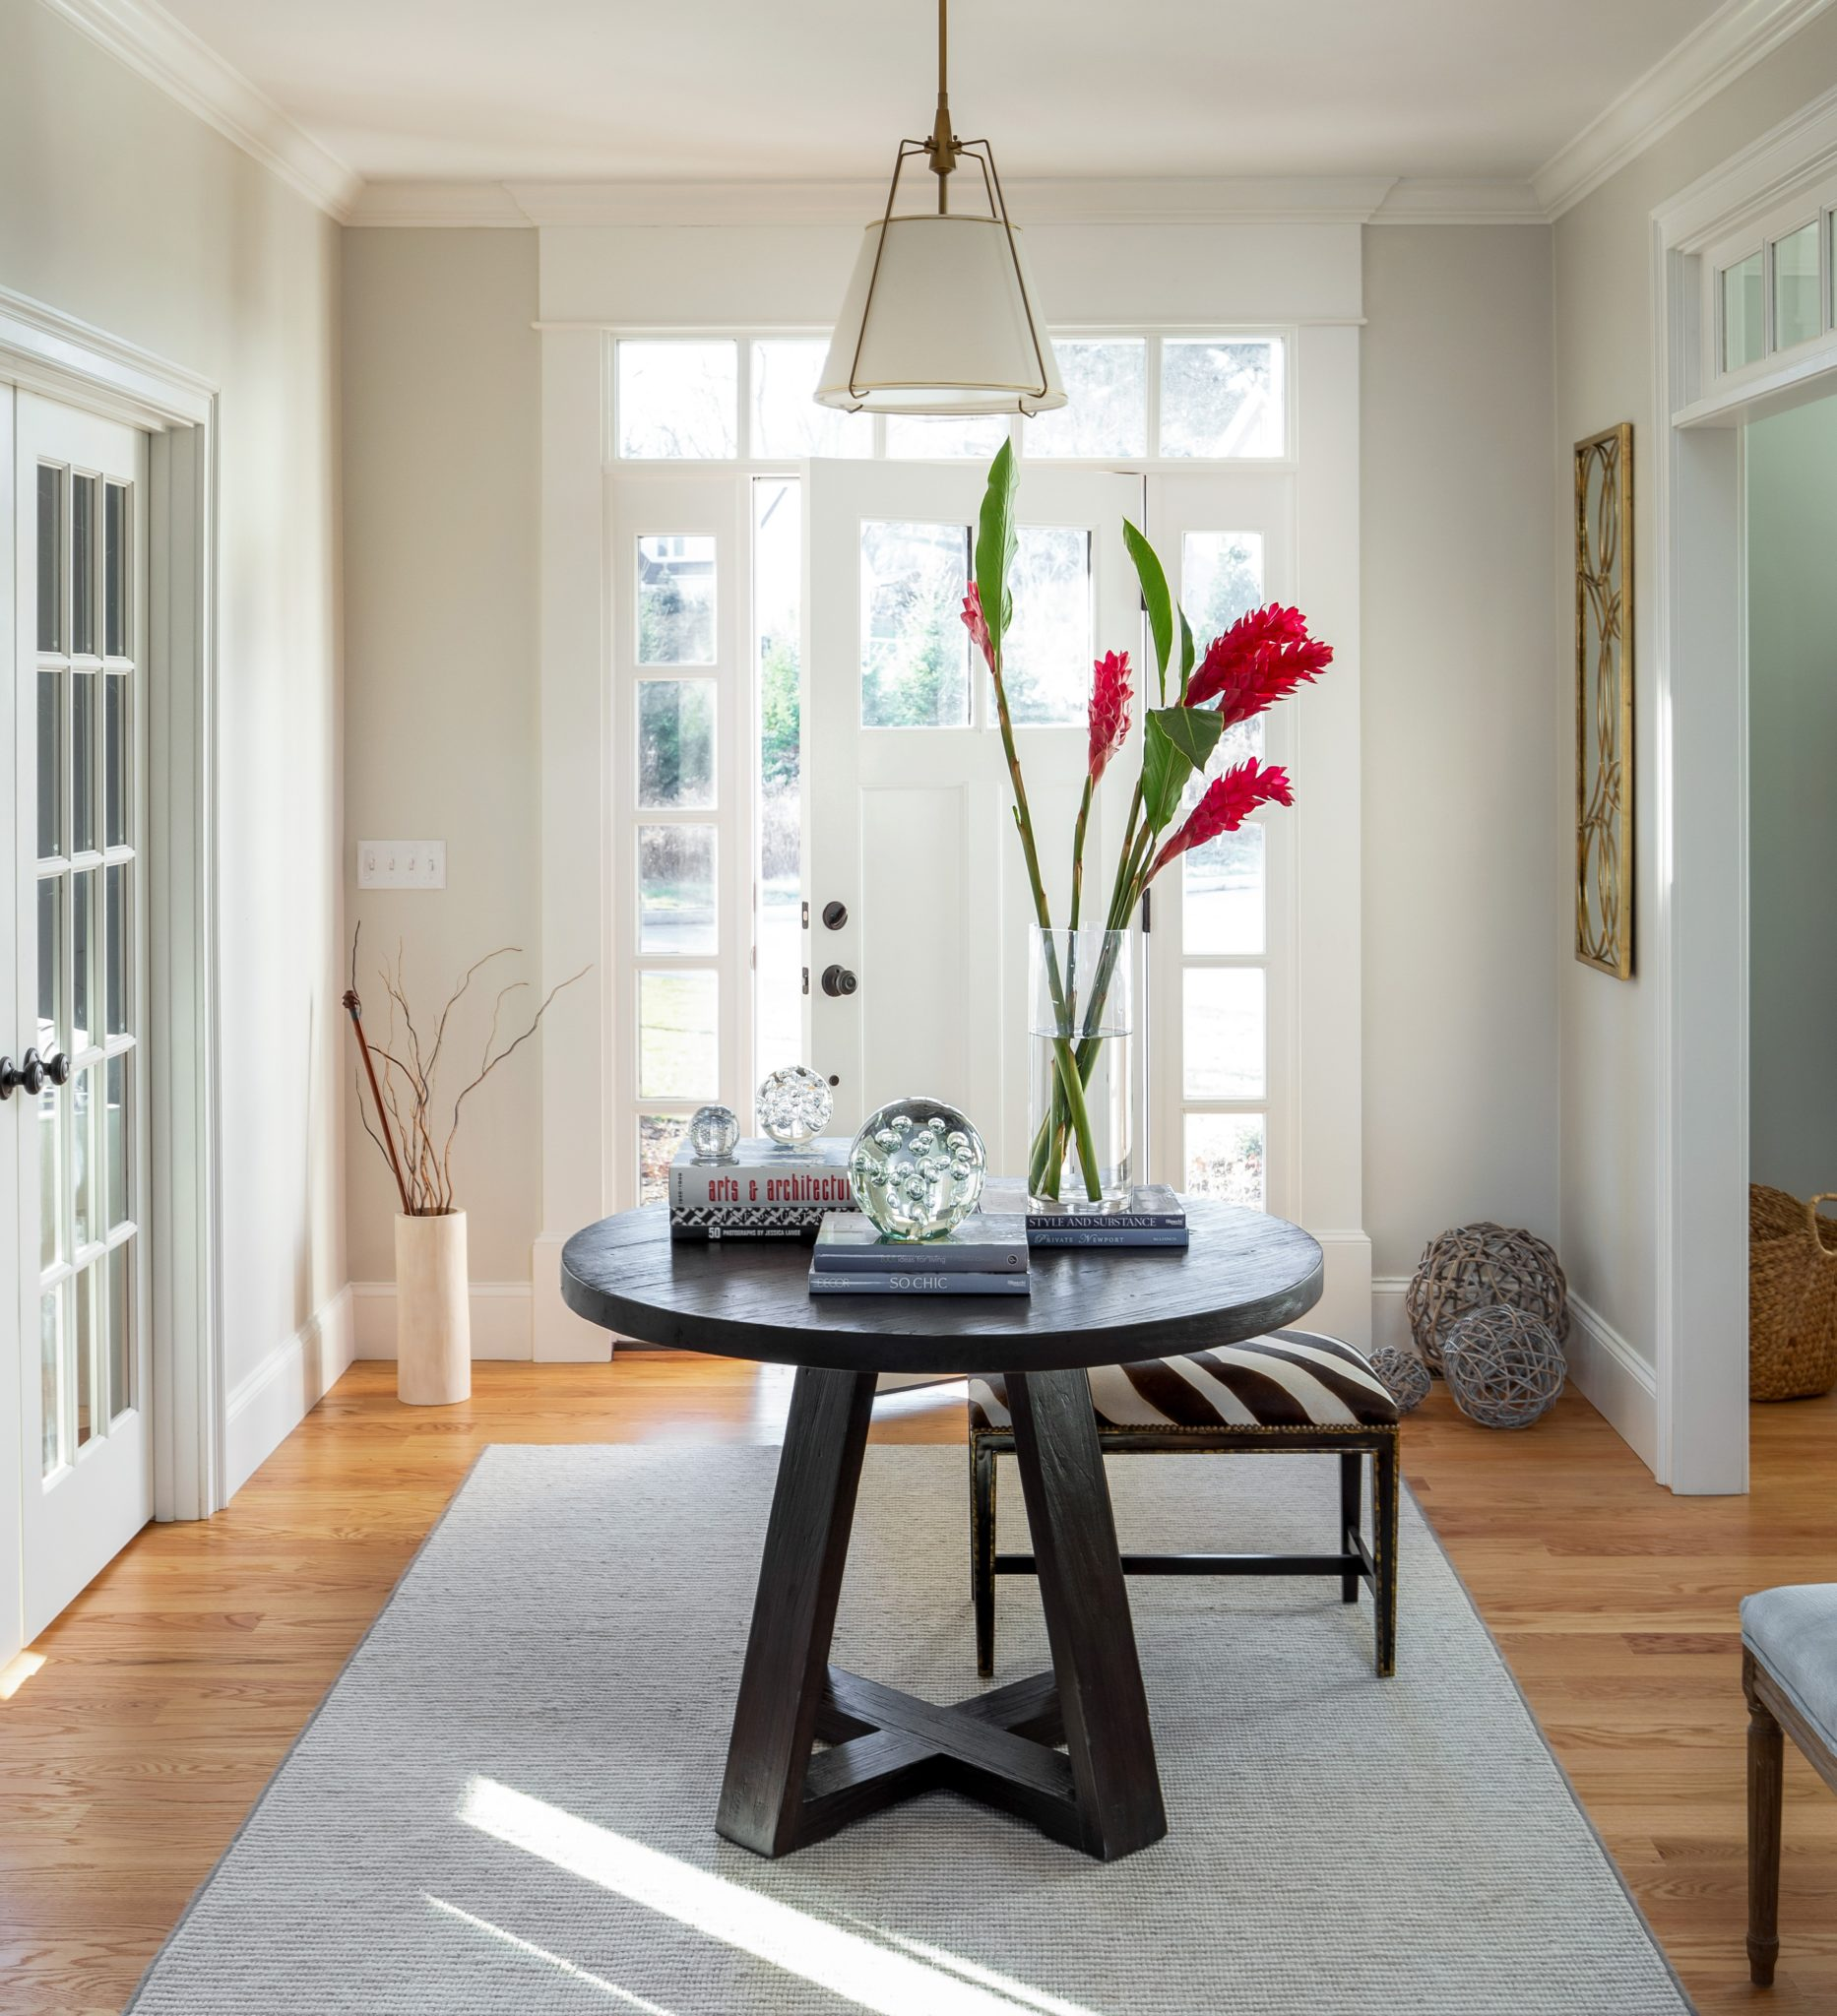 Modern neutral foyer w center table, shade pendant, zebra bench by Sophia Shibles Interiors (formerly SCS Design)